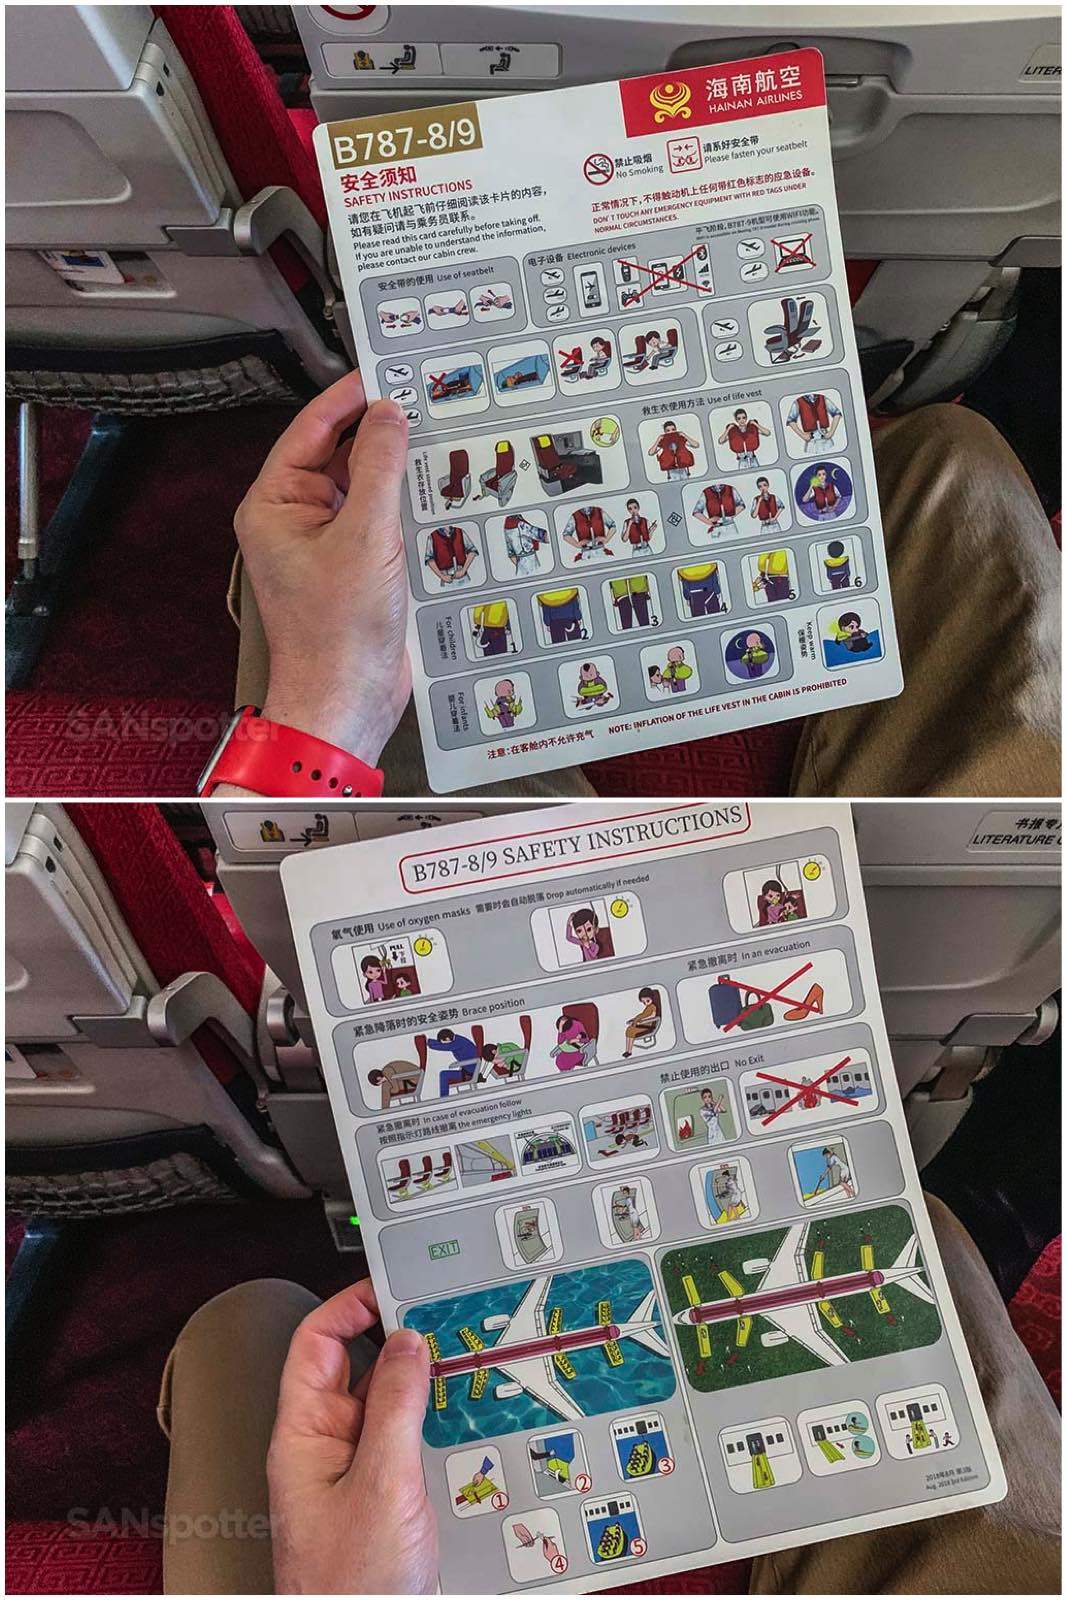 Hainan Airlines 787-9 safety card